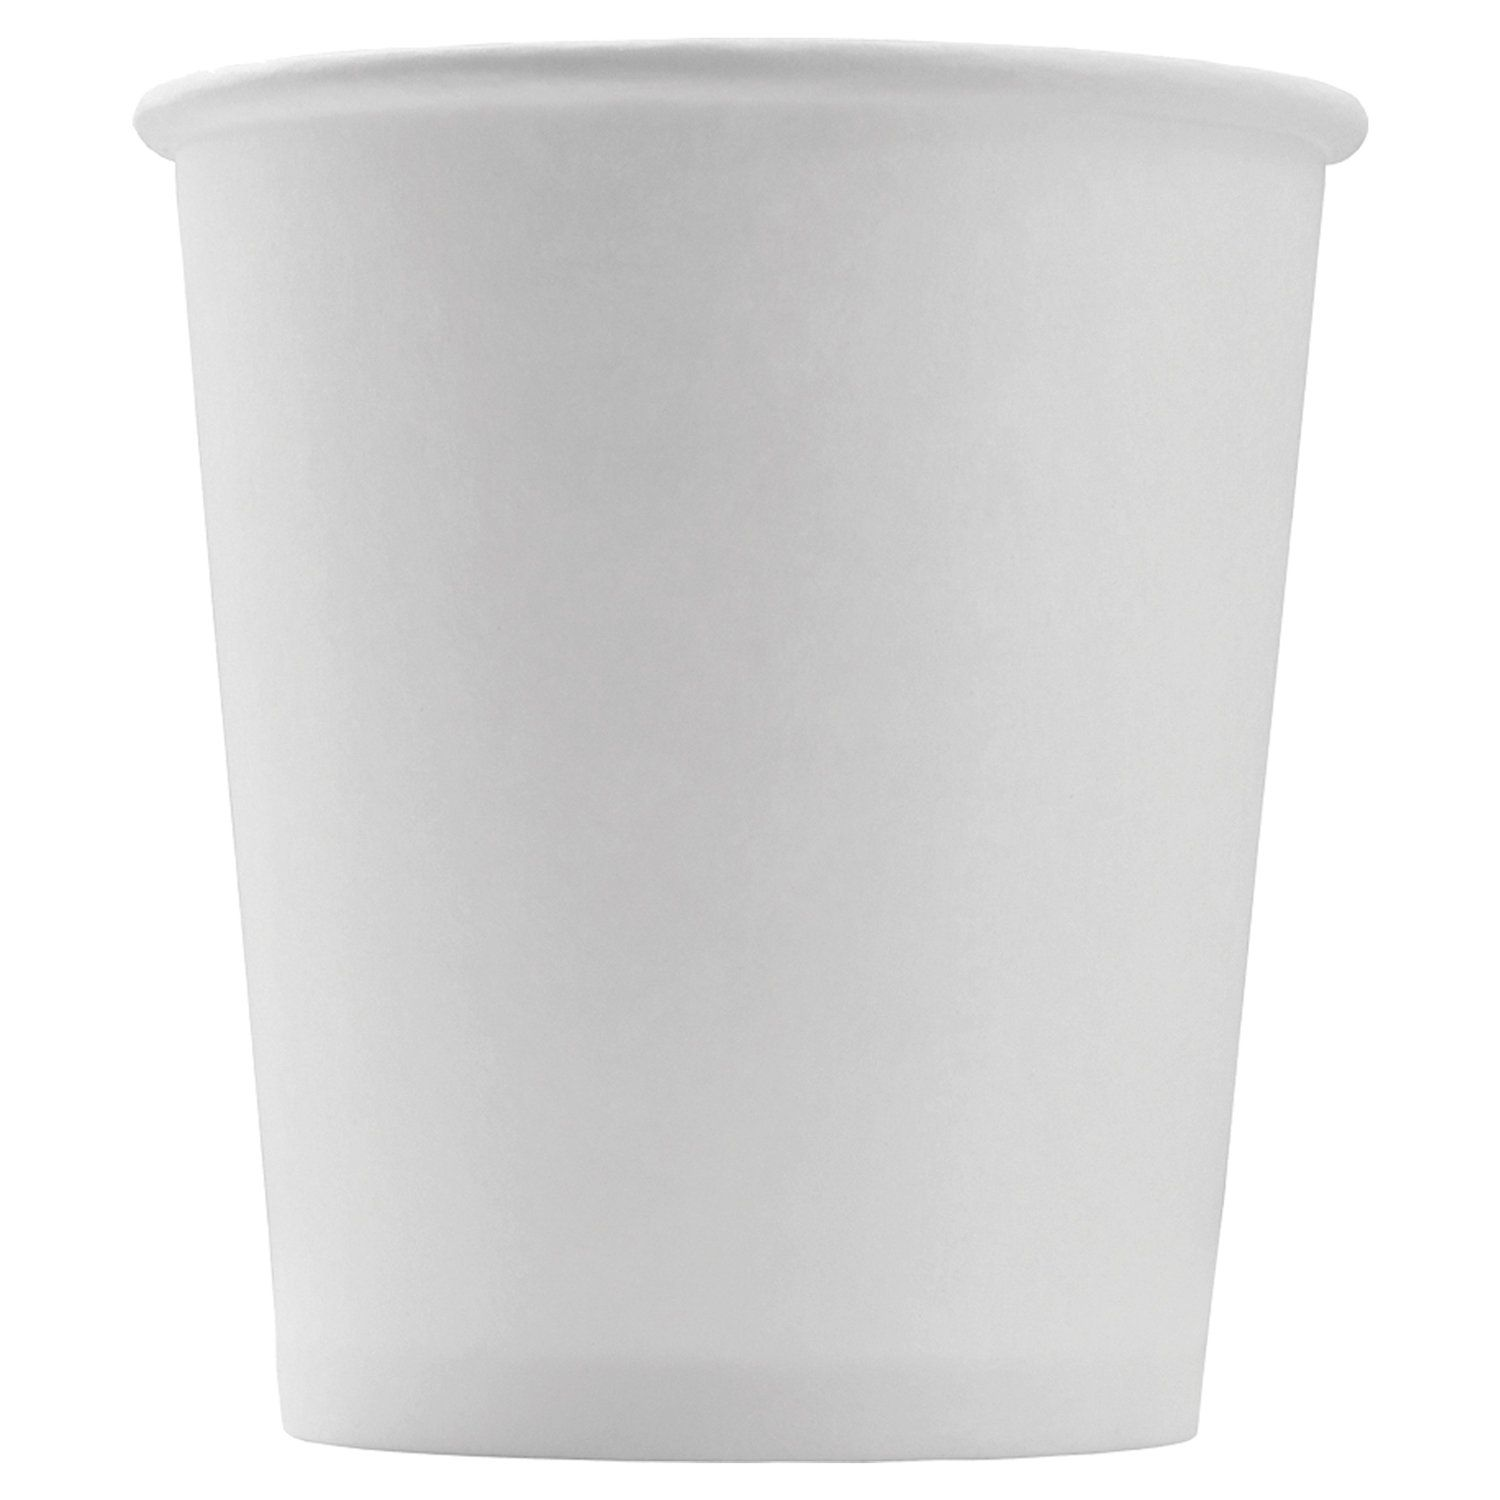 FORMATION / Disposable cups 100 ml, SET 60 pcs., Paper single-layer, white, cold / hot